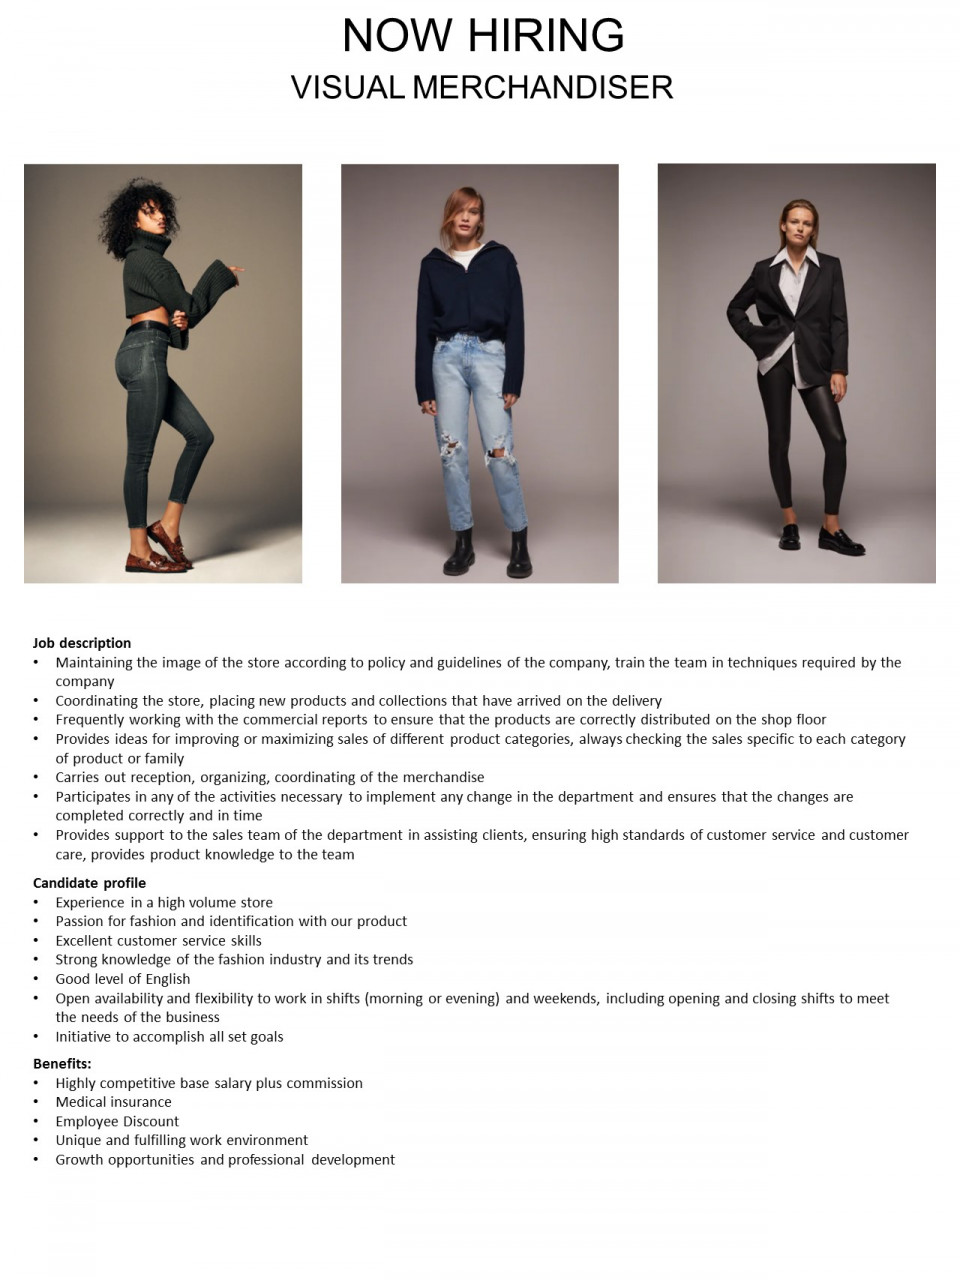 Candidate profile • Experience in a high volume store • Passion for fashion and identification with our product • Excellent customer service skills • Strong knowledge of the fashion industry and its trends • Good level of English • Open availability and flexibility to work in shifts (morning or evening) and weekends, including opening and closing shifts to meet the needs of the business • Initiative to accomplish all set goals Job description • Maintaining the image of the store according to policy and guidelines of the company, train the team in techniques required by the company • Coordinating the store, placing new products and collections that have arrived on the delivery • Frequently working with the commercial reports to ensure that the products are correctly distributed on the shop floor • Provides ideas for improving or maximizing sales of different product categories, always checking the sales specific to each category of product or family • Carries out reception, organizing, coordinating of the merchandise • Participates in any of the activities necessary to implement any change in the department and ensures that the changes are completed correctly and in time • Provides support to the sales team of the department in assisting clients, ensuring high standards of customer service and customer care, provides product knowledge to the team  Benefits: • Highly competitive base salary plus commission • Medical insurance • Employee Discount • Unique and fulfilling work environment • Growth opportunities and professional development Inditex is one of the worlds largest fashion distributors, with eight sales formats -Zara, Pull and Bear, Massimo Dutti, Bershka, Stradivarius, Oysho, Zara Home y Uterque- boasting 7500 stores in 94 countries. The Inditex Group is comprised of over one hundred companies associated with the business of textile design, manufacturing and distribution. Thanks to its achievements and the uniqueness of its management model based on innovatio